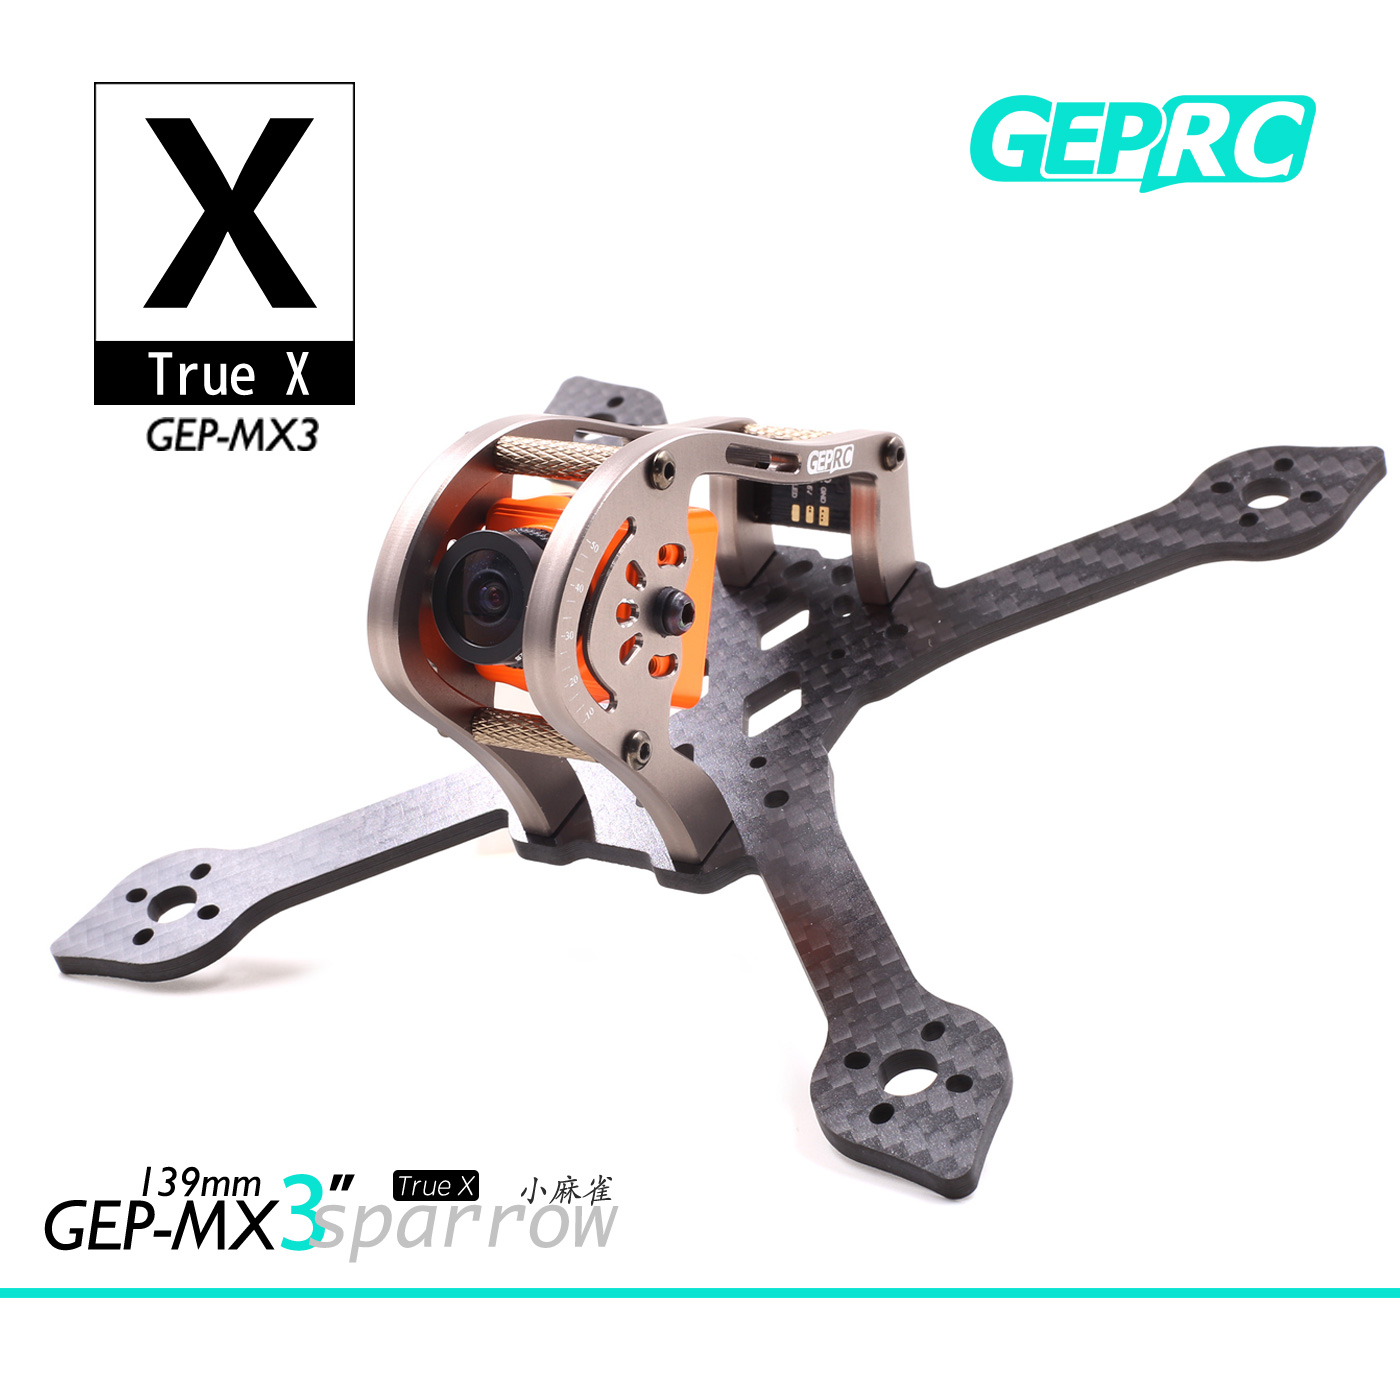 GEPRC MX3 Sparrow Geprc GEP-MX3 139 139mm Carbon Fiber 3mm Arm FPV Racing Frame for Rc Quadcopter Racer DIY geprc gep px2 gep px2 5 gep px3 carbon fiber frame high quality for rc diy fpv racing drone freestyle